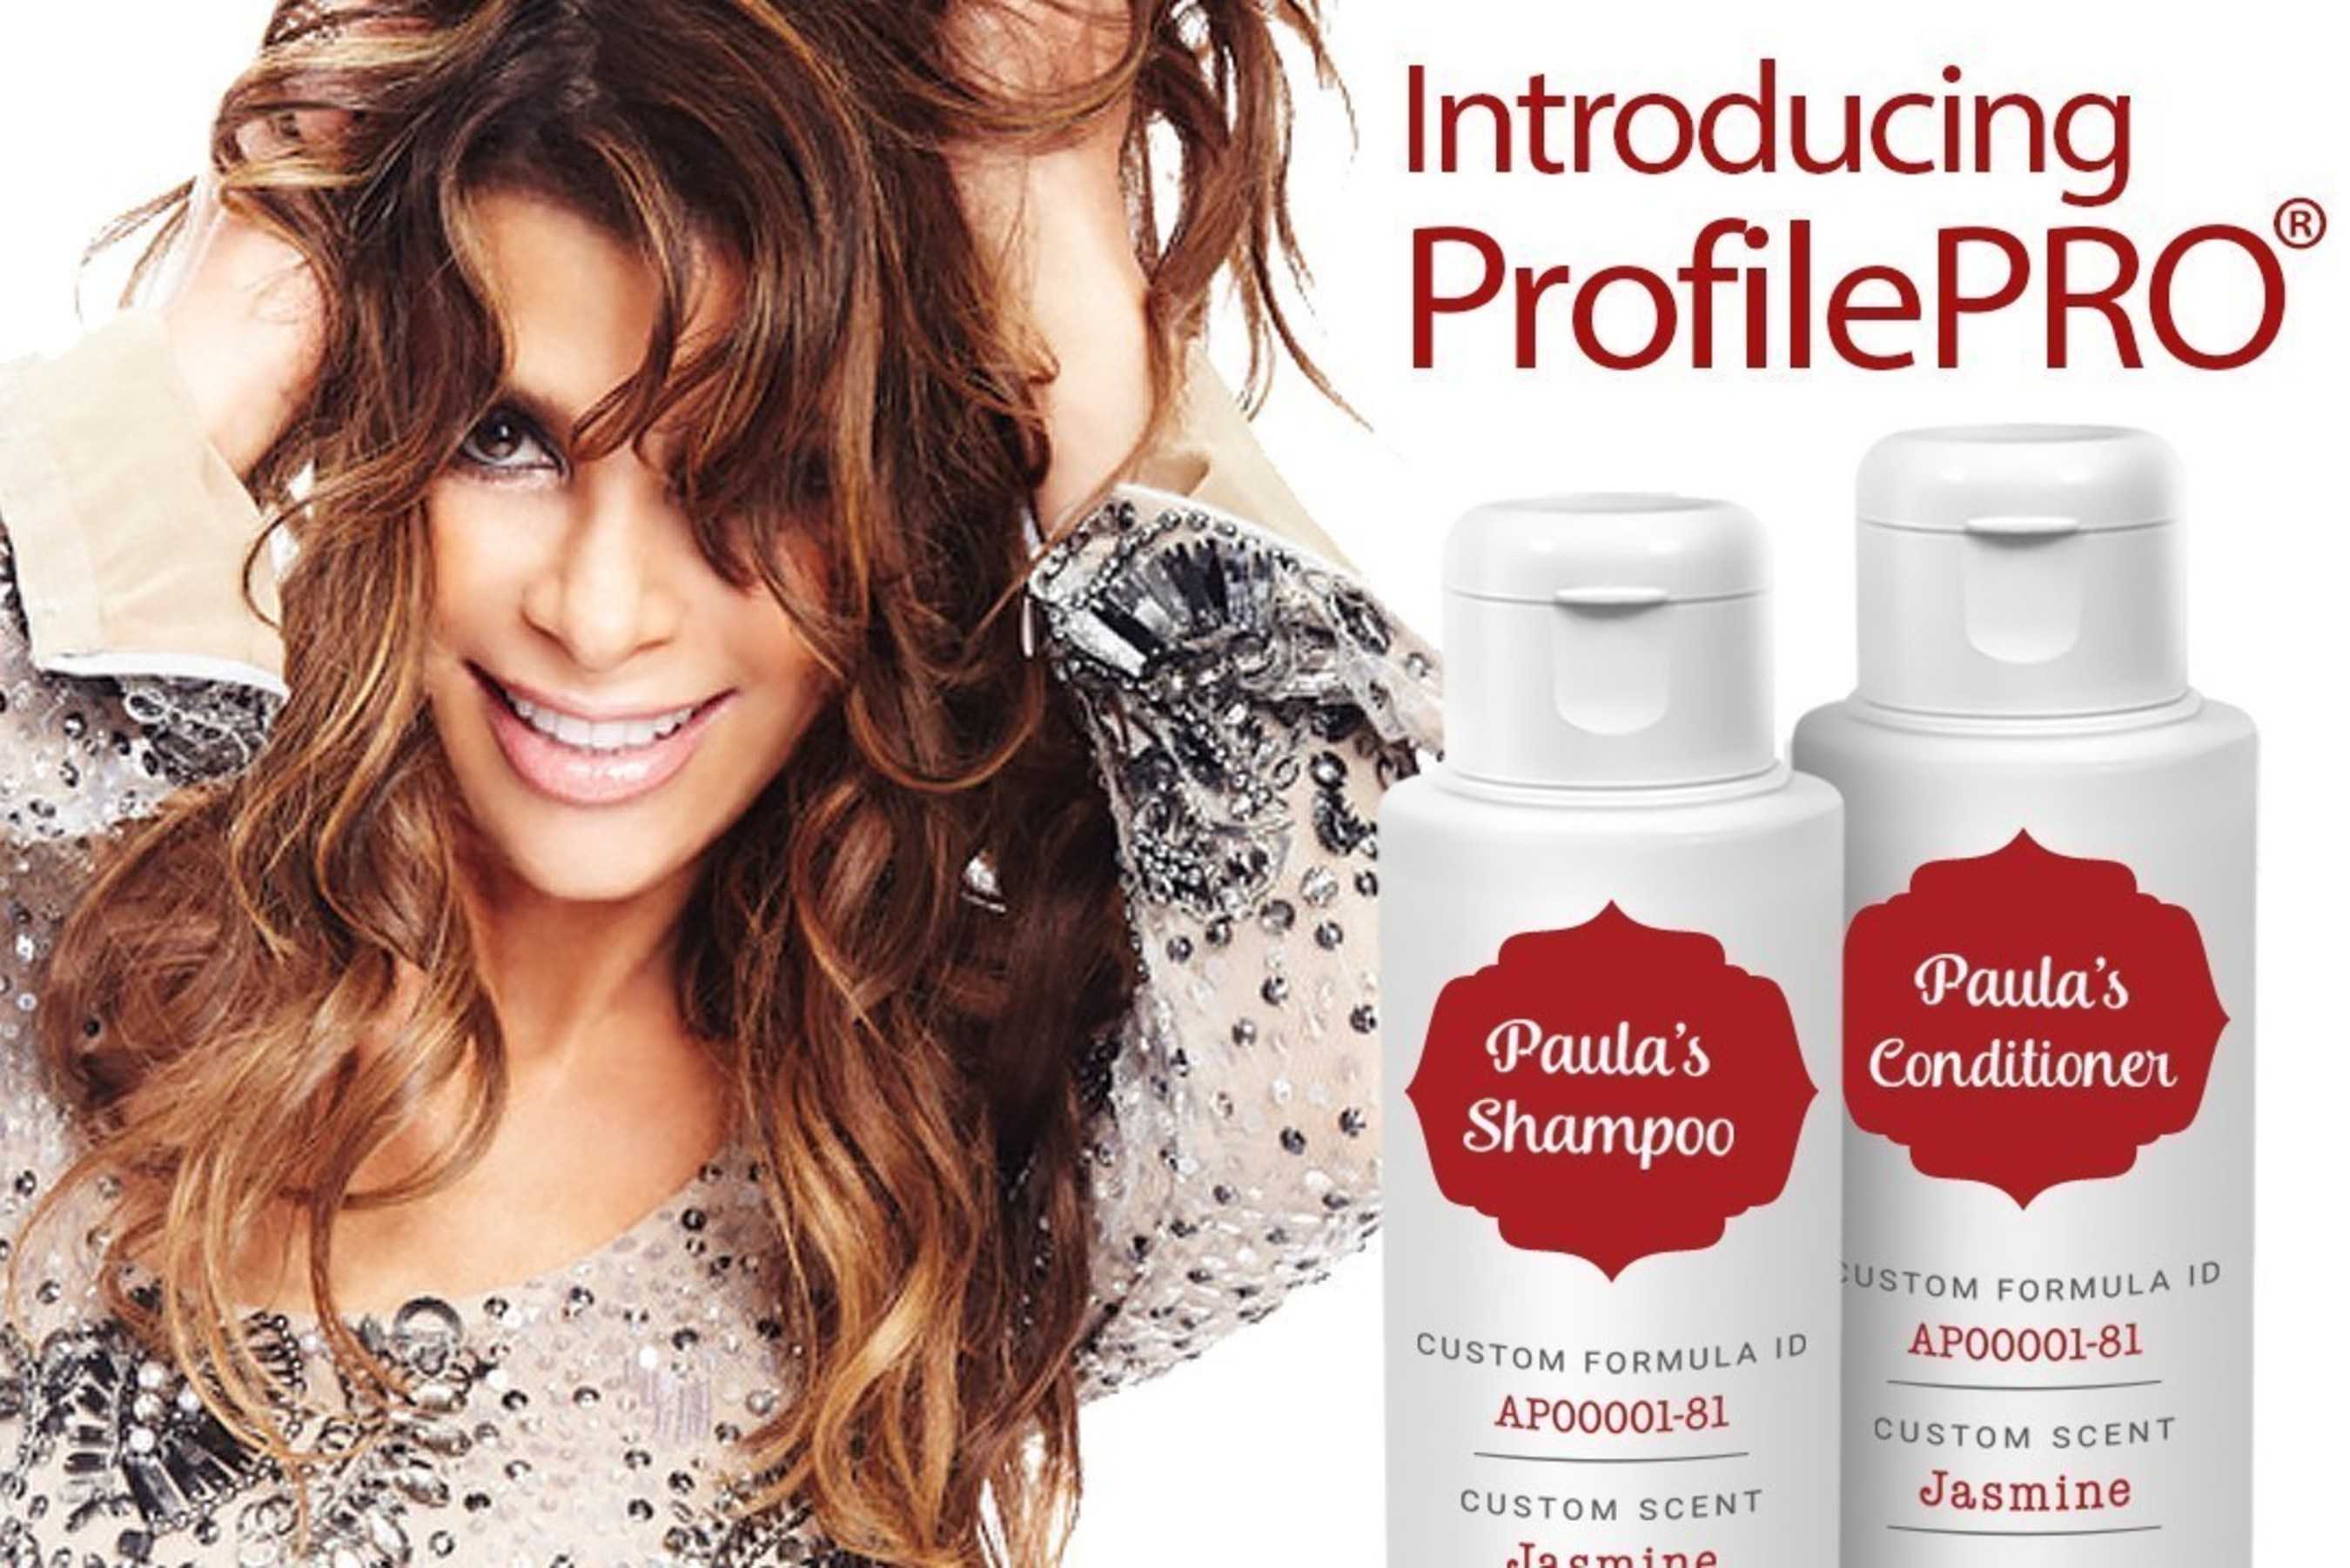 40,000 Free Travel-Size Sets Of ProfilePRO Available Exclusively On StarShop